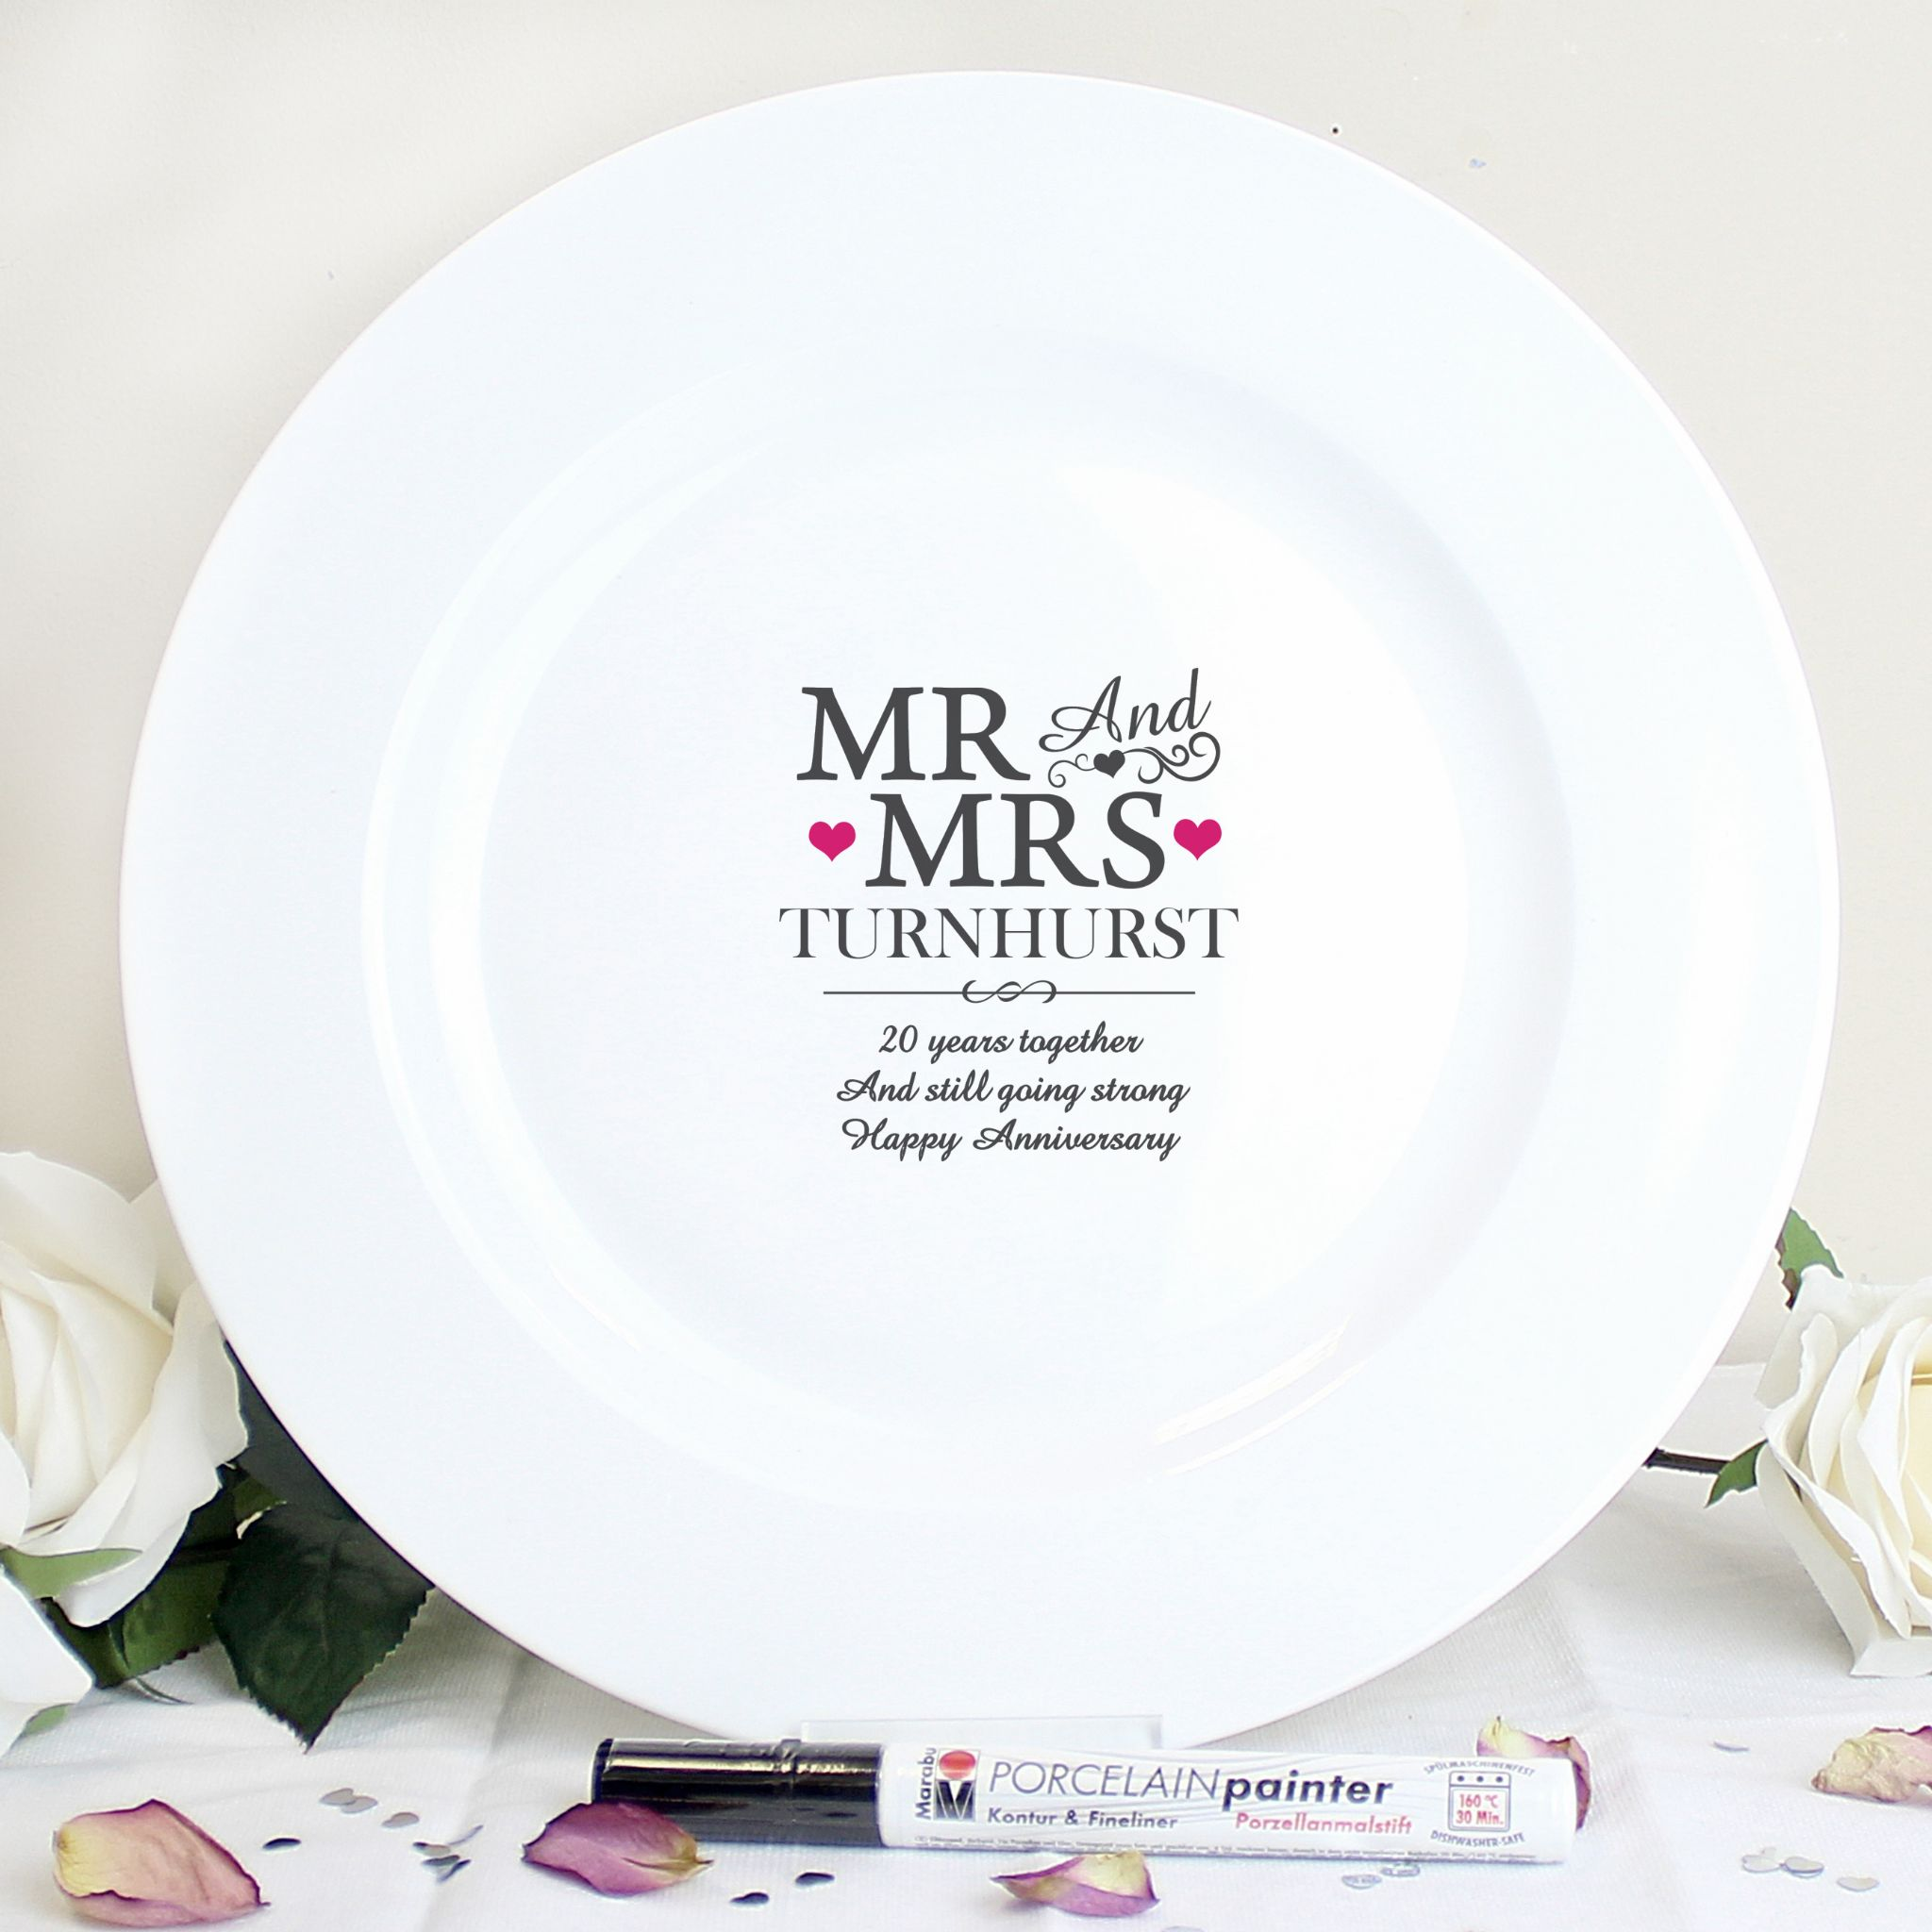 Mr and Mrs Message Plate with Personalisation Pen for Family and Friends to Sign